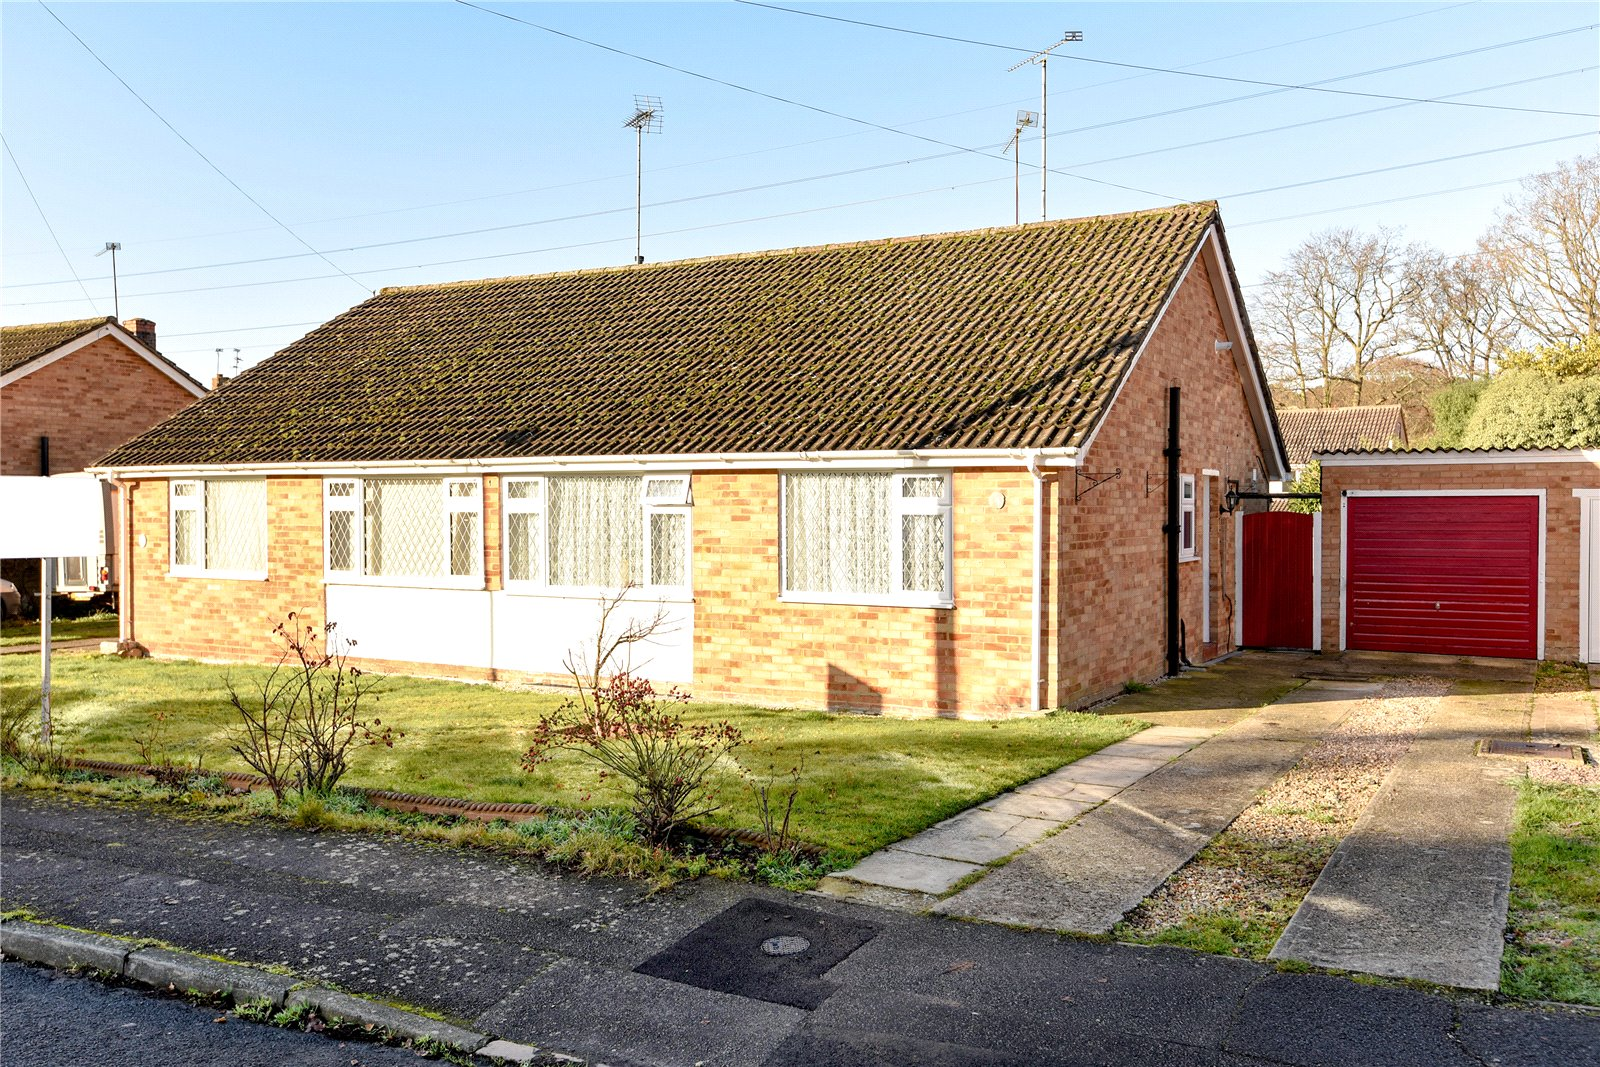 2 Bedrooms Semi Detached Bungalow for sale in Chiltern Road, Sandhurst, Berkshire, GU47